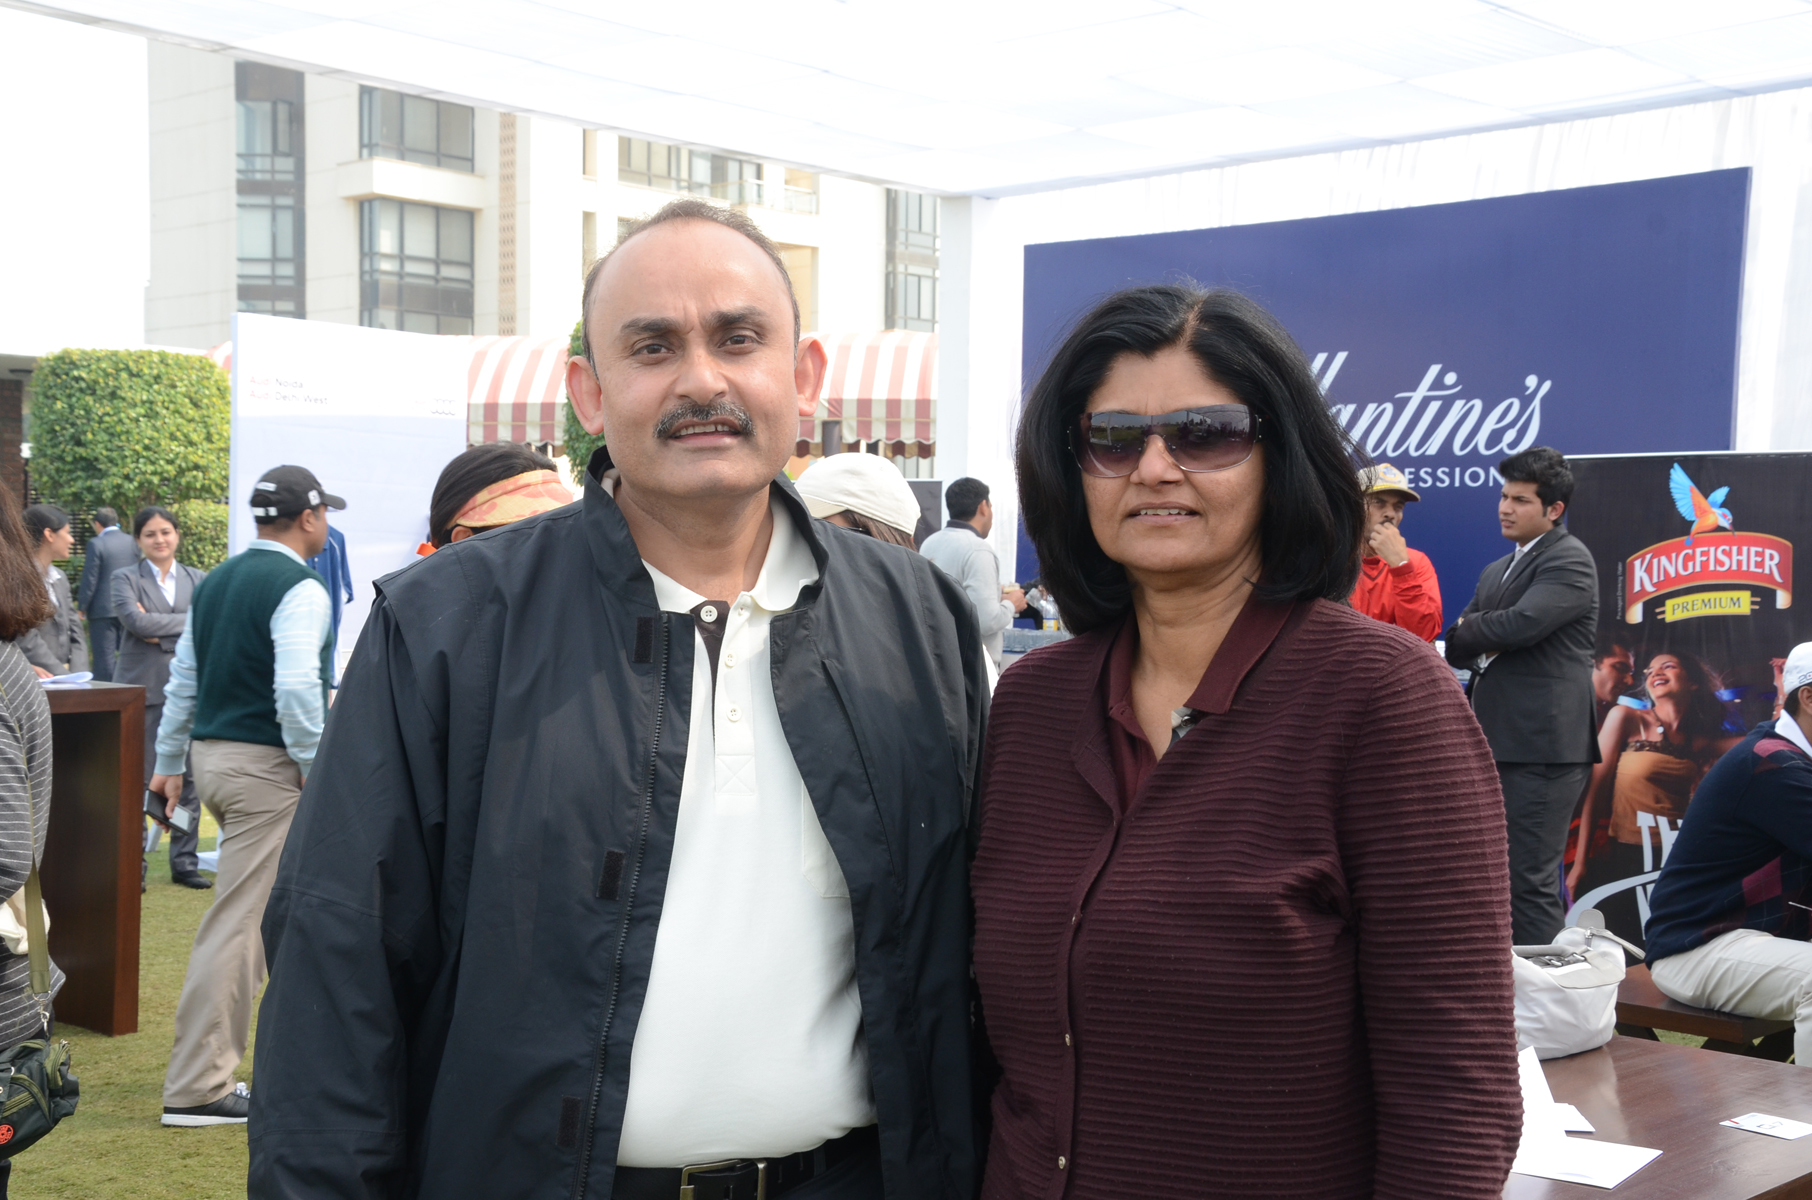 Mr. Sarvajit Verma  Senior Vice President  Audi Delhi West with Ms. Pooja Batra